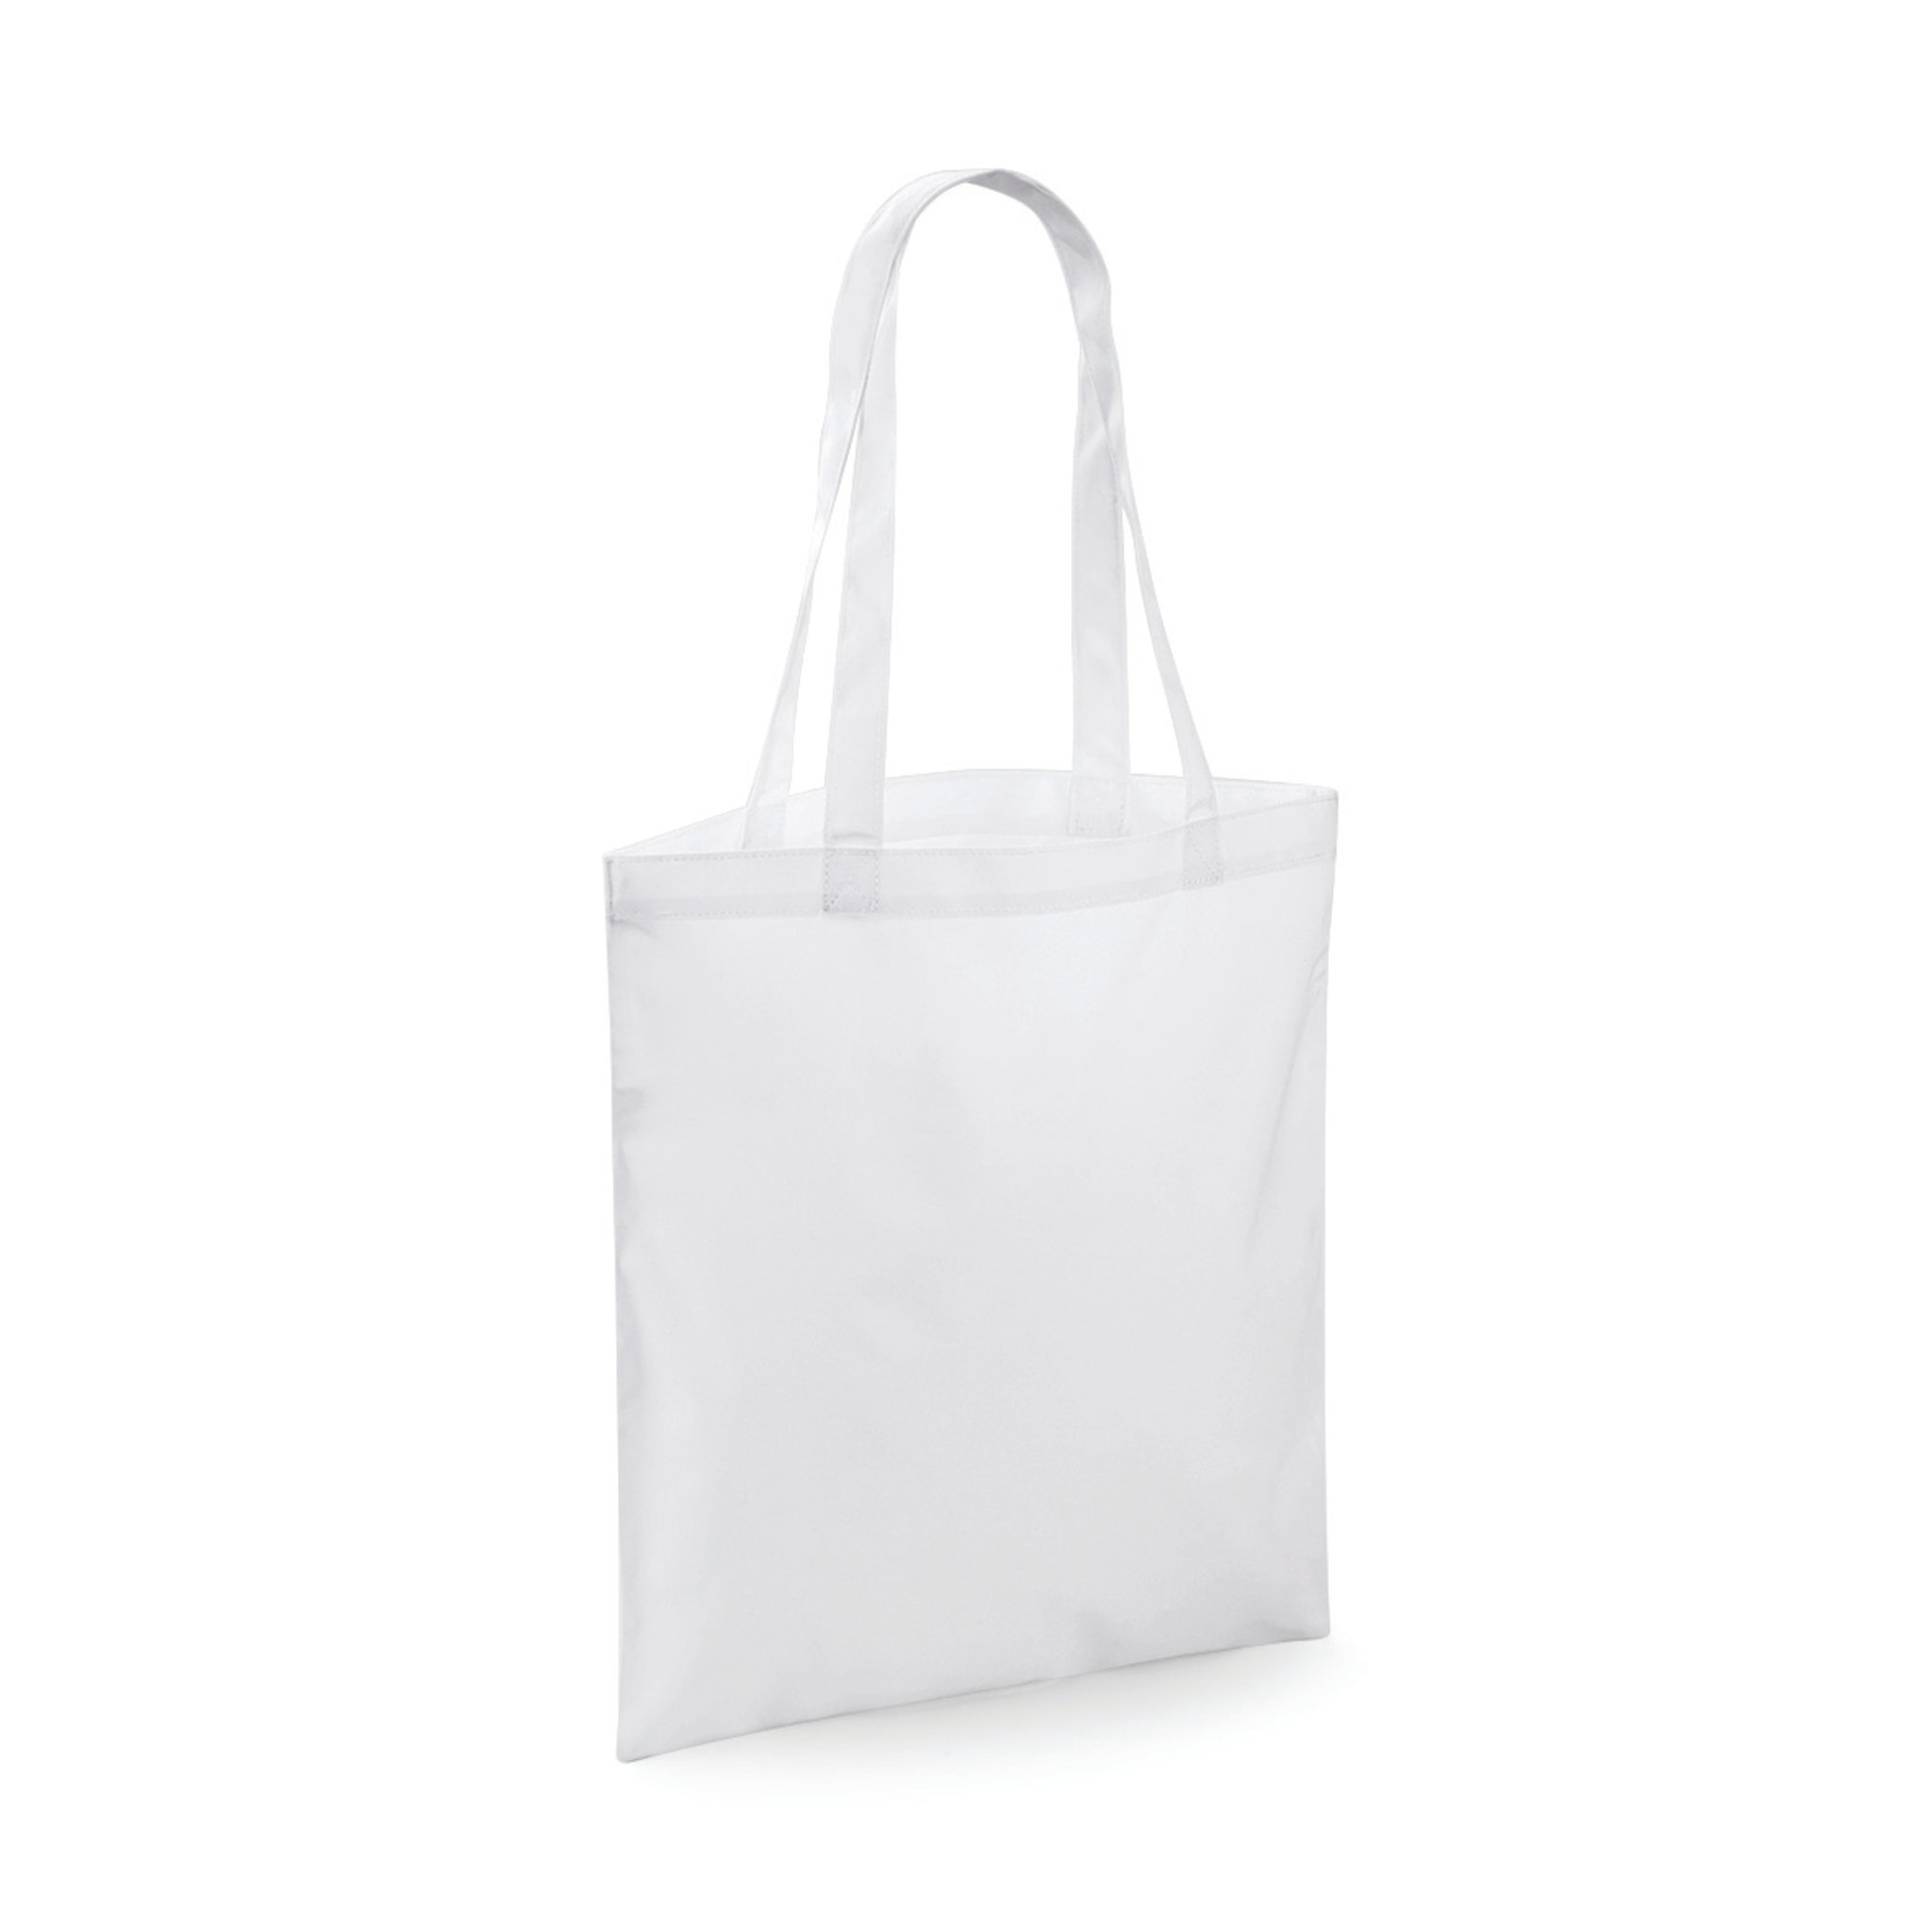 Sac shopping personnalisable Shooper - sac shopping promotionnel